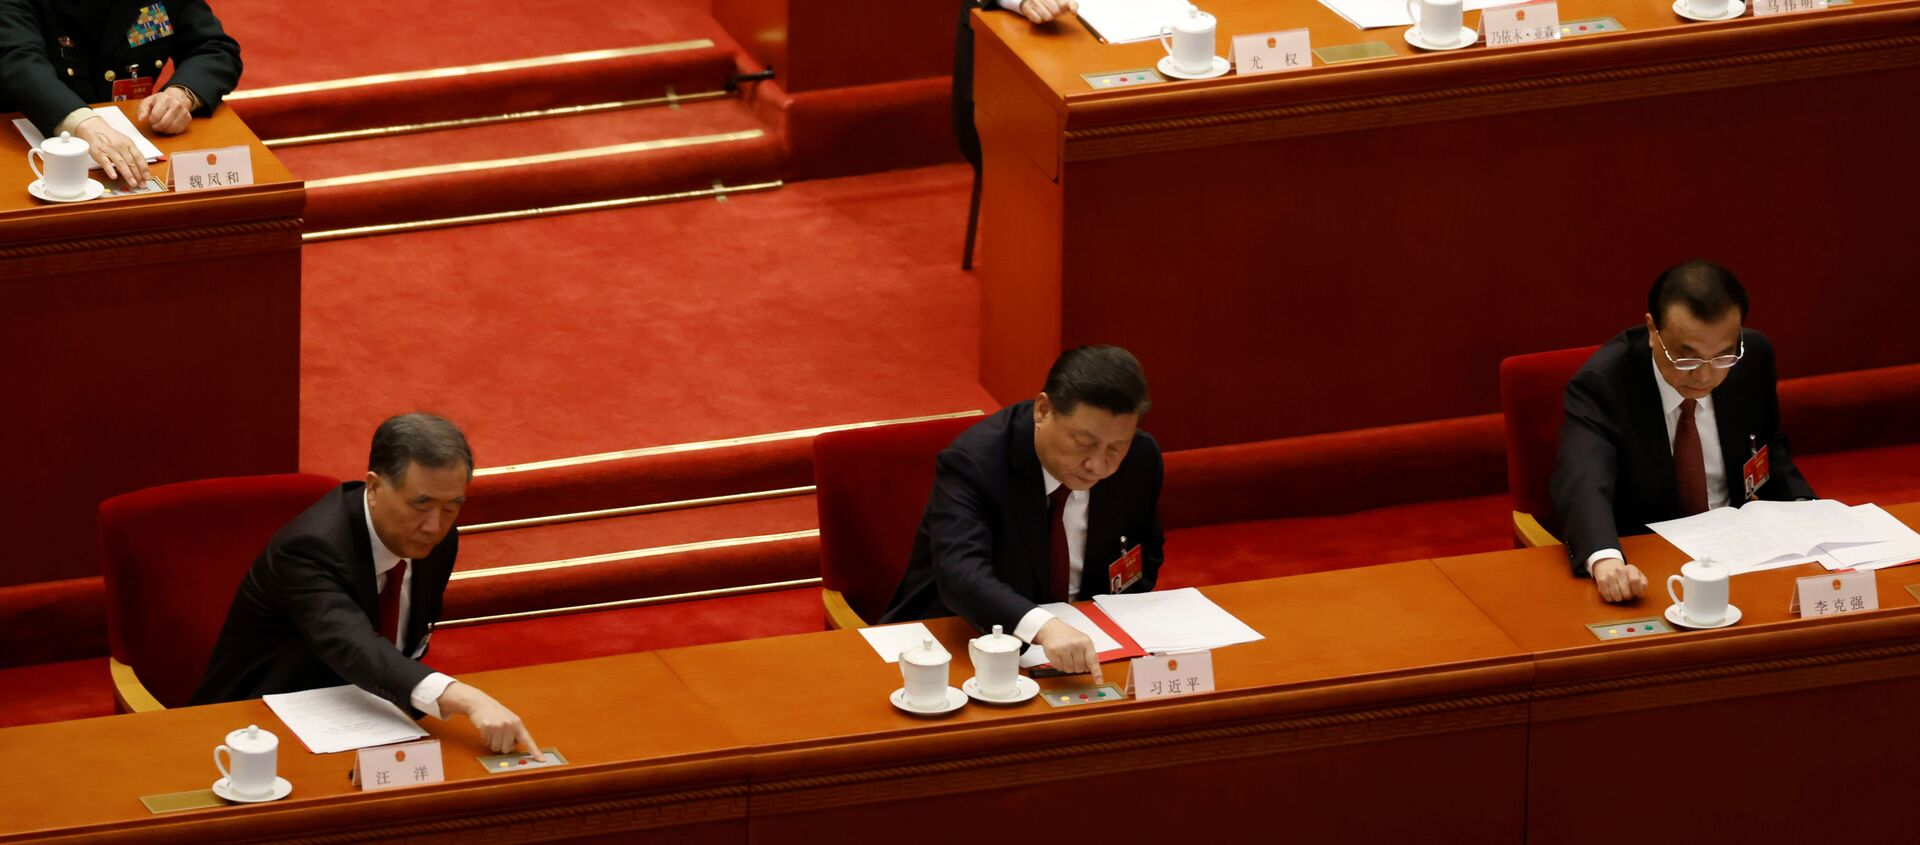 Chinese President Xi Jinping and other leaders cast their votes on Hong Kong electoral reform at the closing session of the National People's Congress (NPC) at the Great Hall of the People in Beijing, China March 11, 2021 - Sputnik International, 1920, 30.03.2021